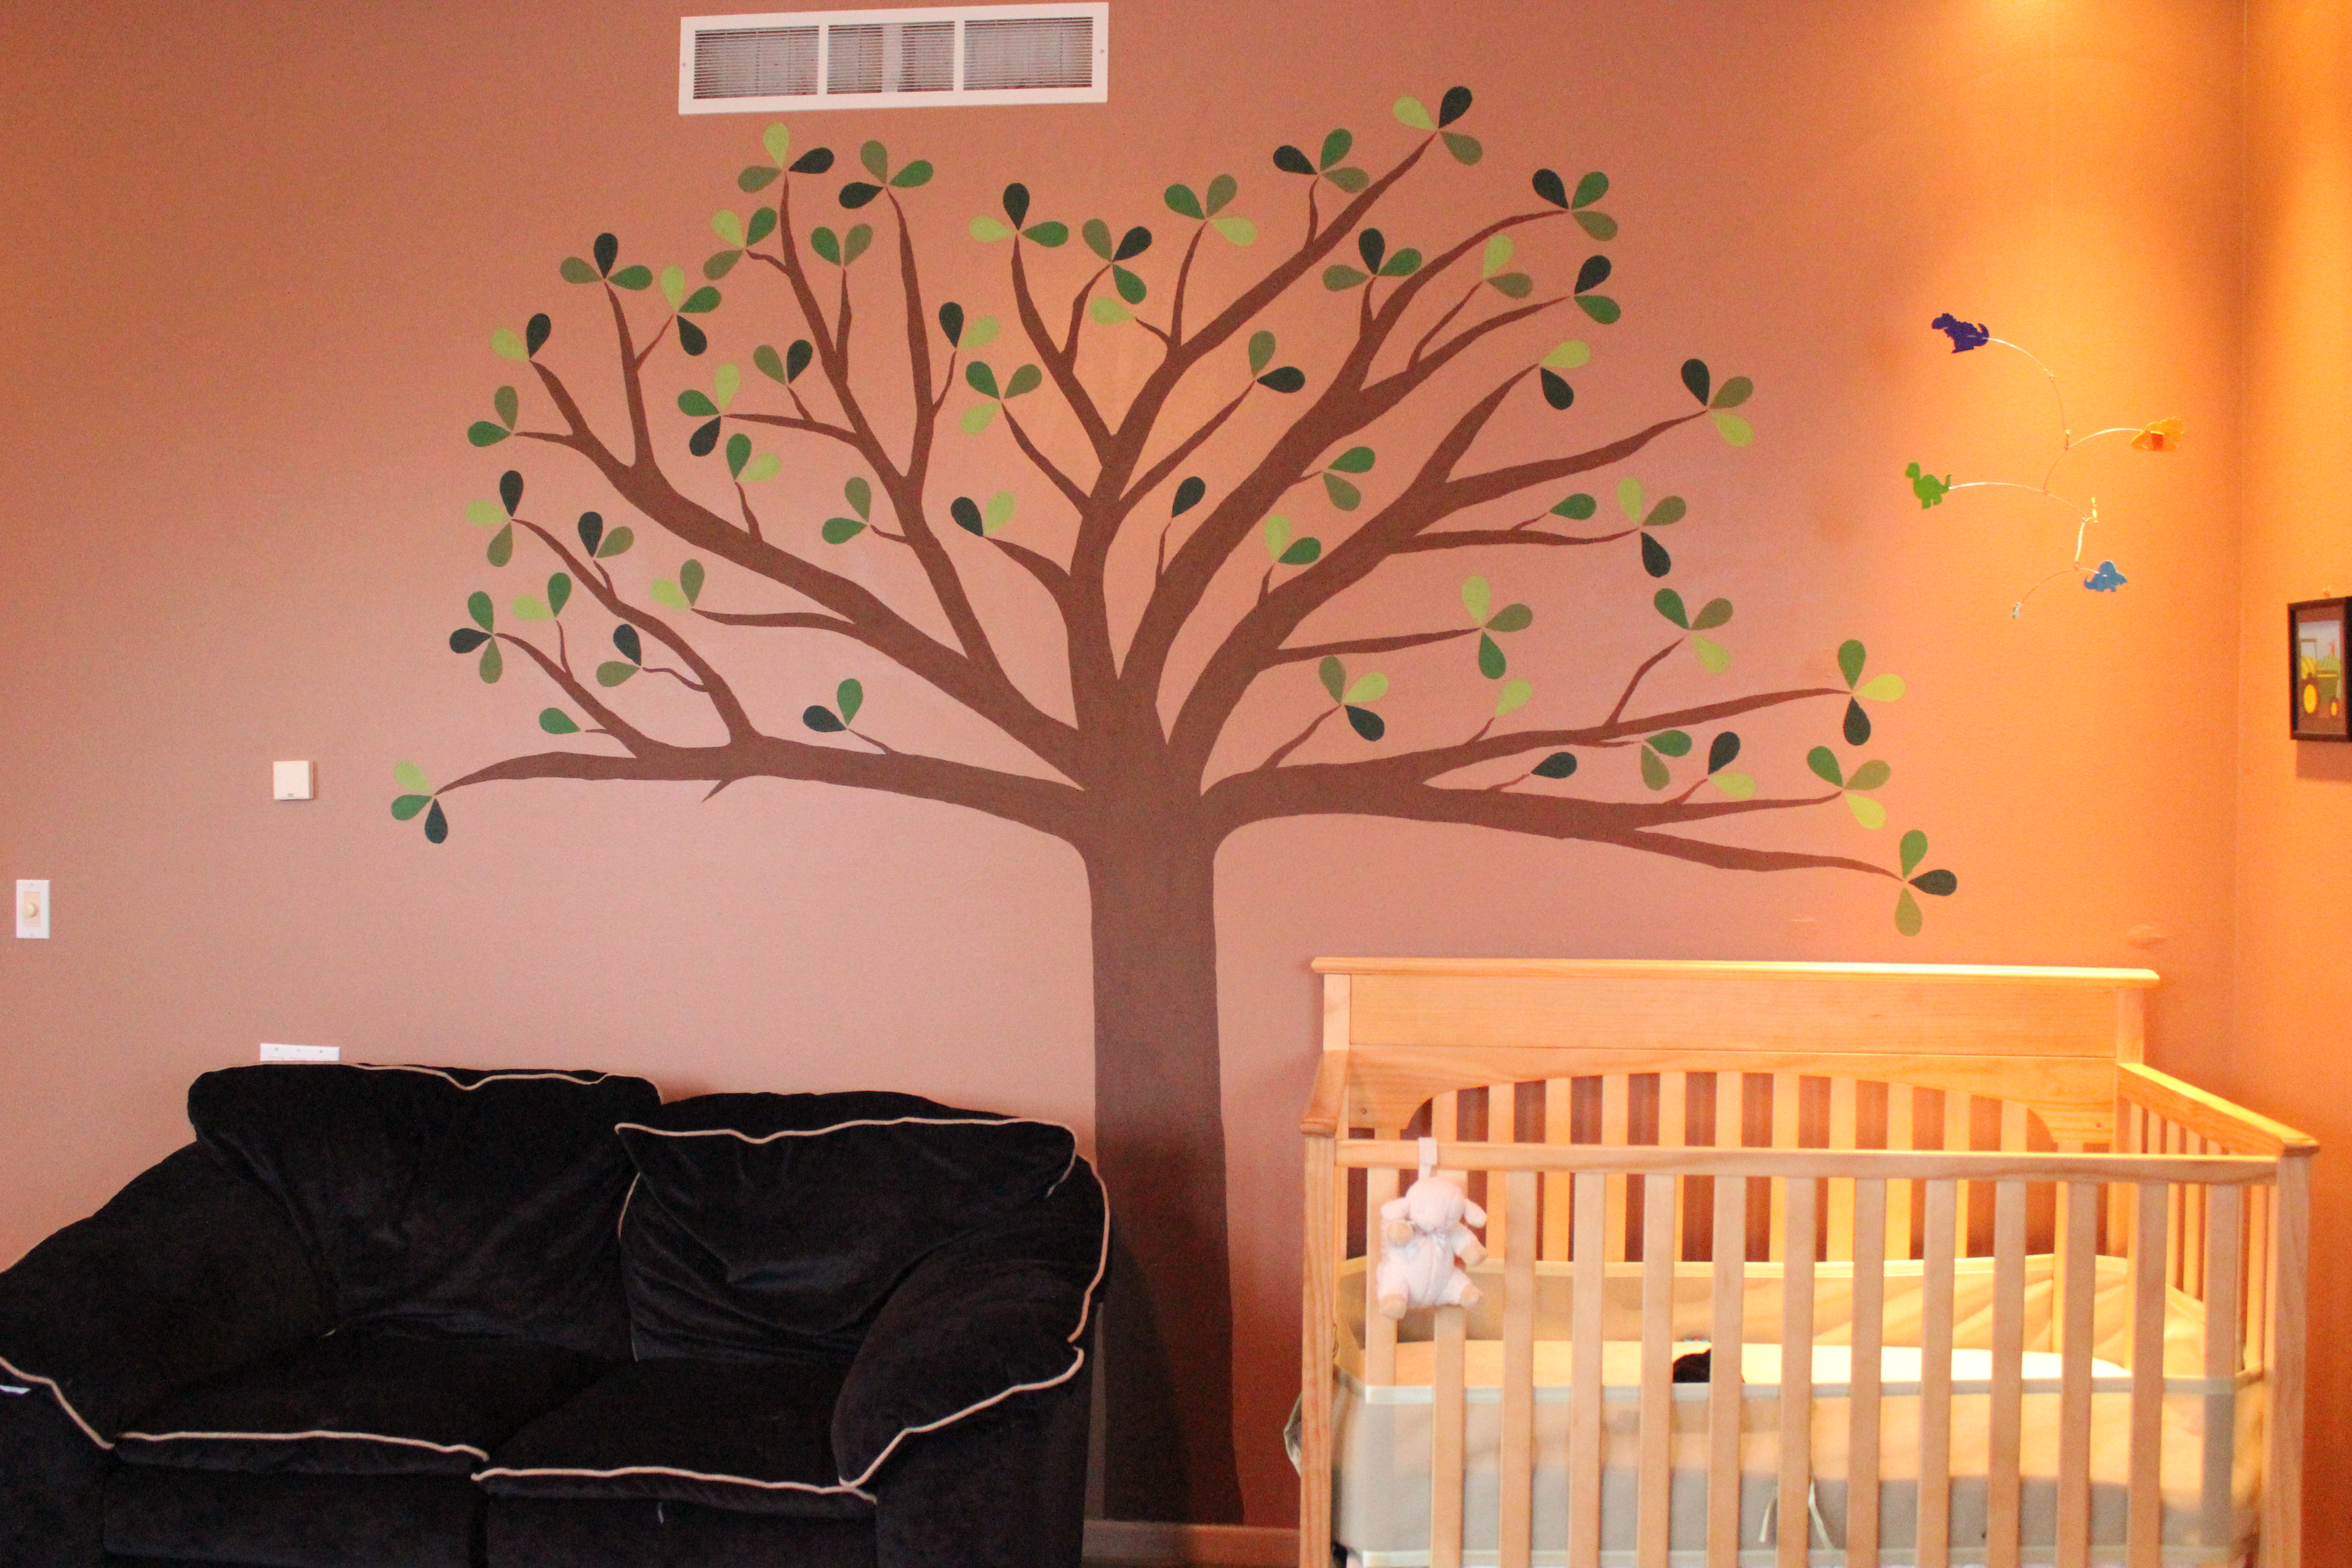 How to paint a tree on your wall - I Love The New Fad Right Now Of Having A Giant Tree Painted On Your Child S Bedroom Wall It S Awesome So Naturally I Wanted To Have One In Evan S Room